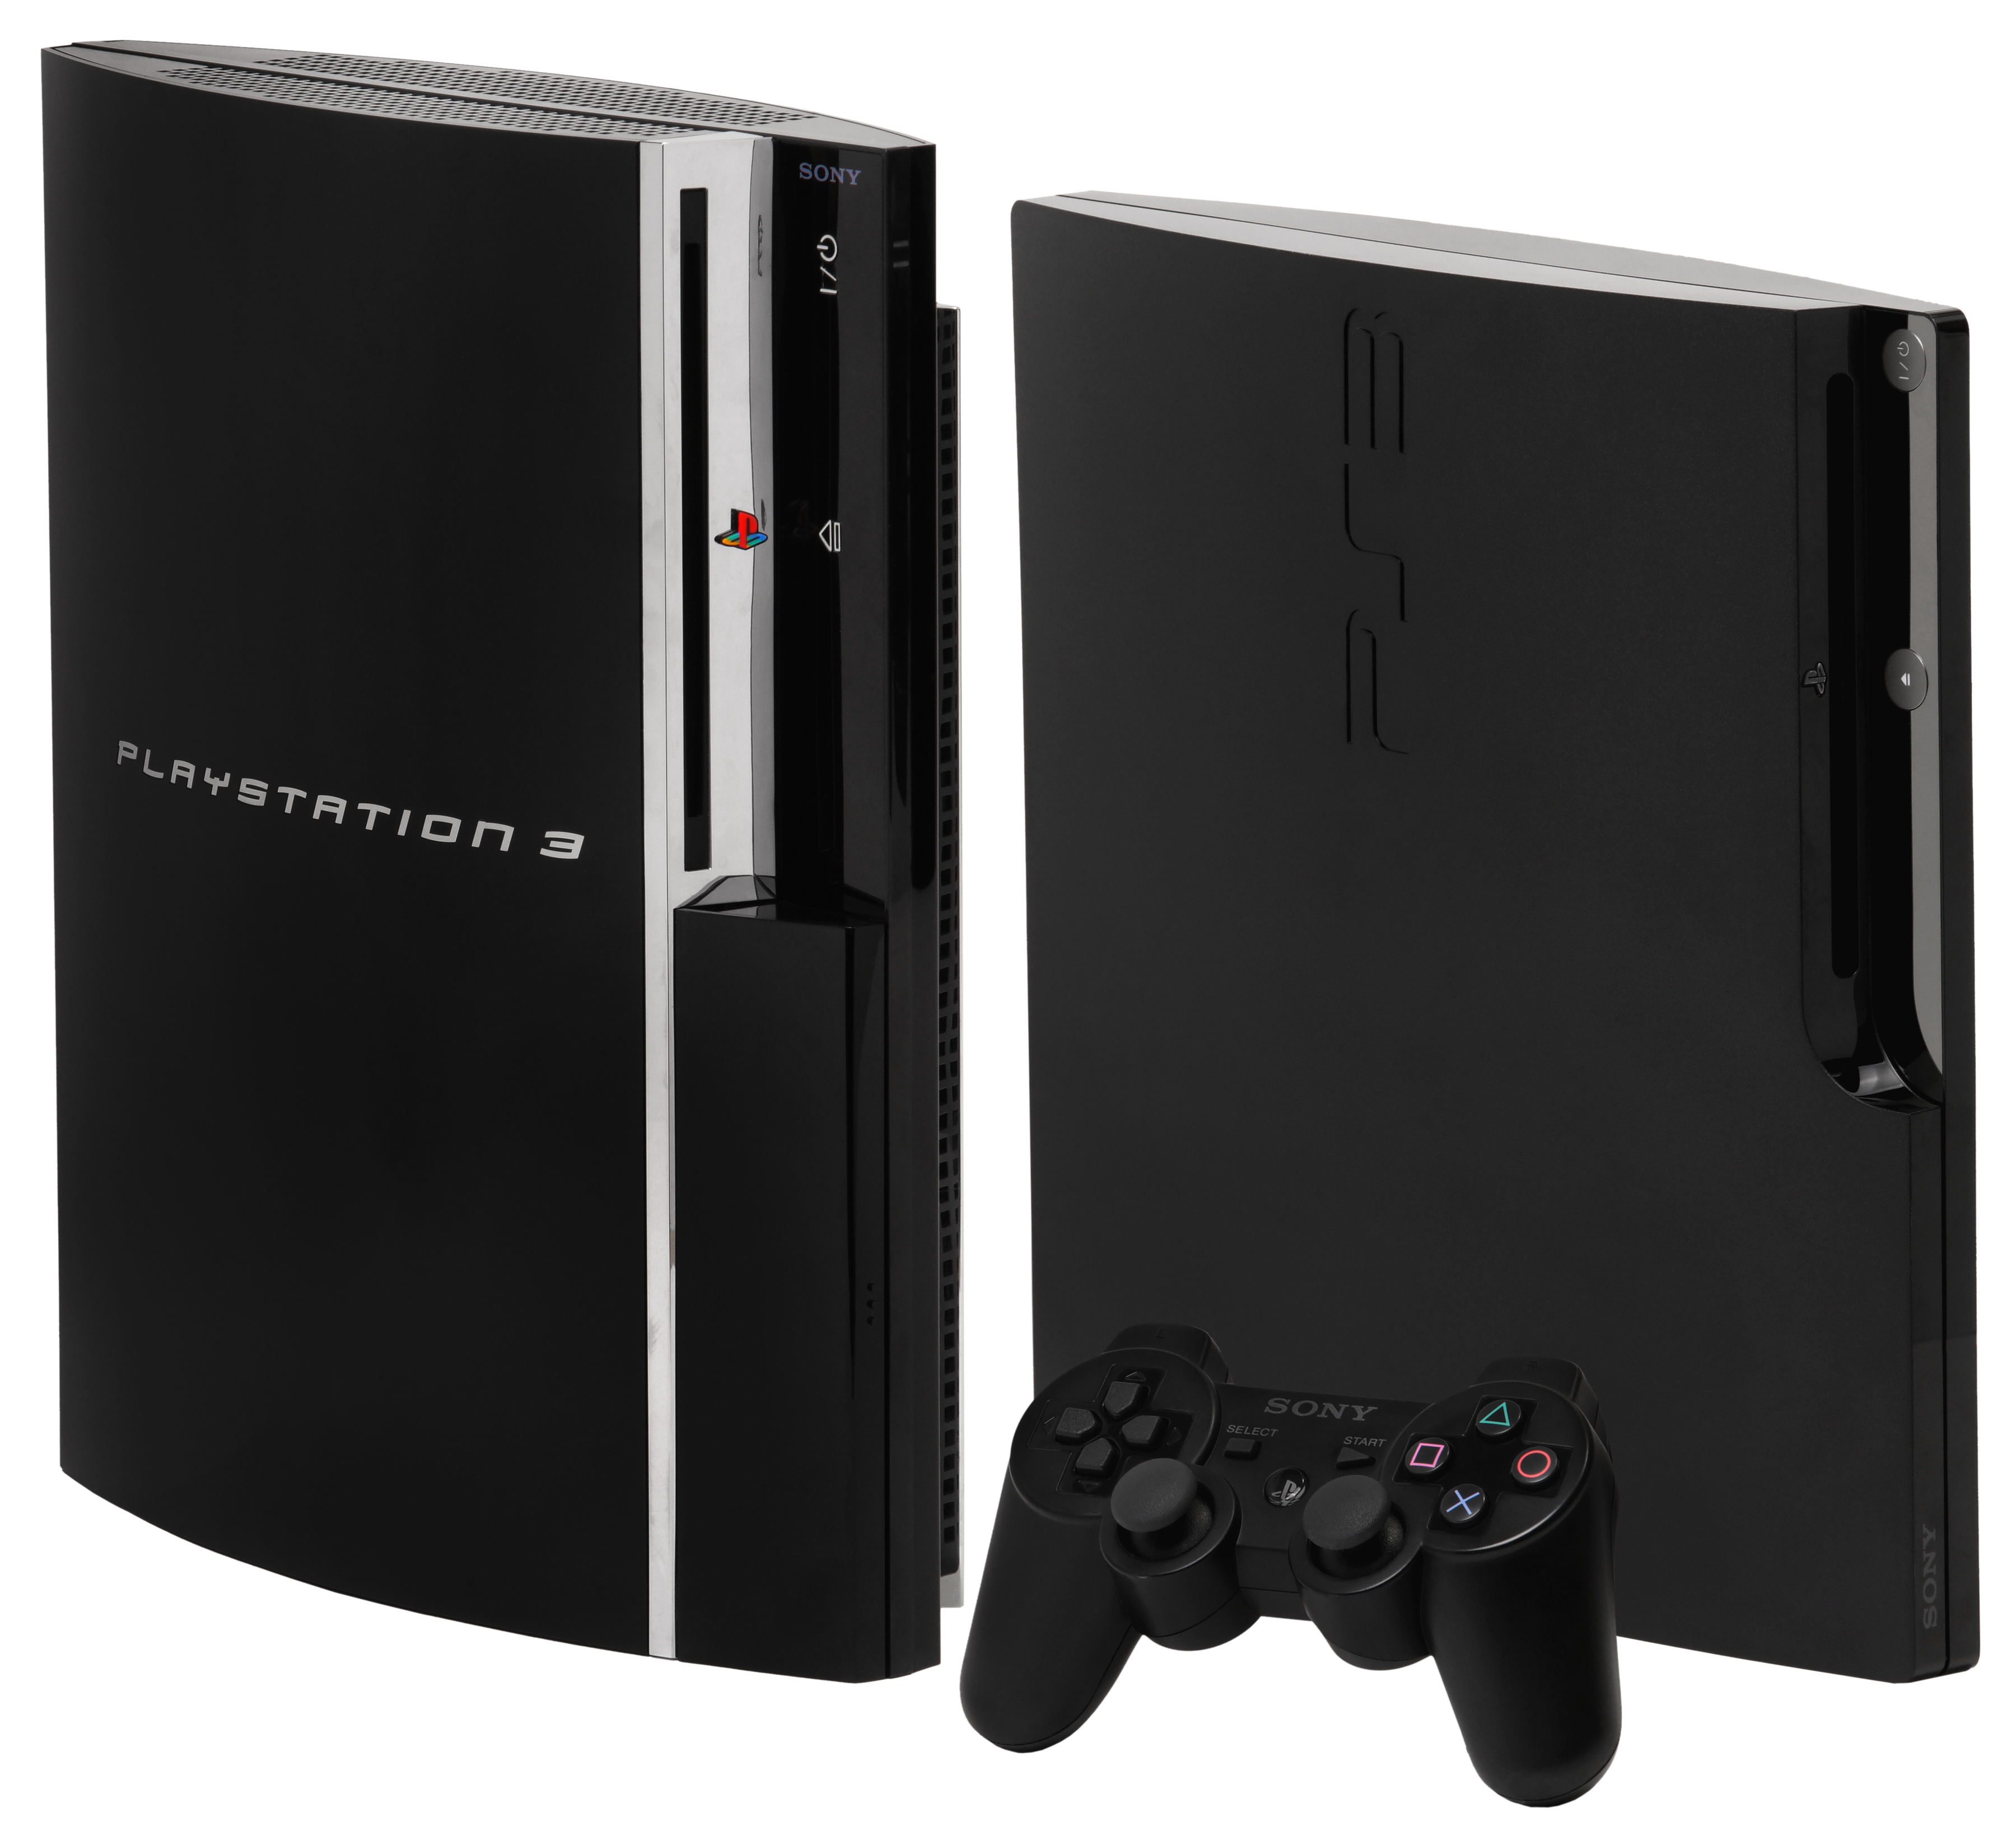 PS3Versions 600